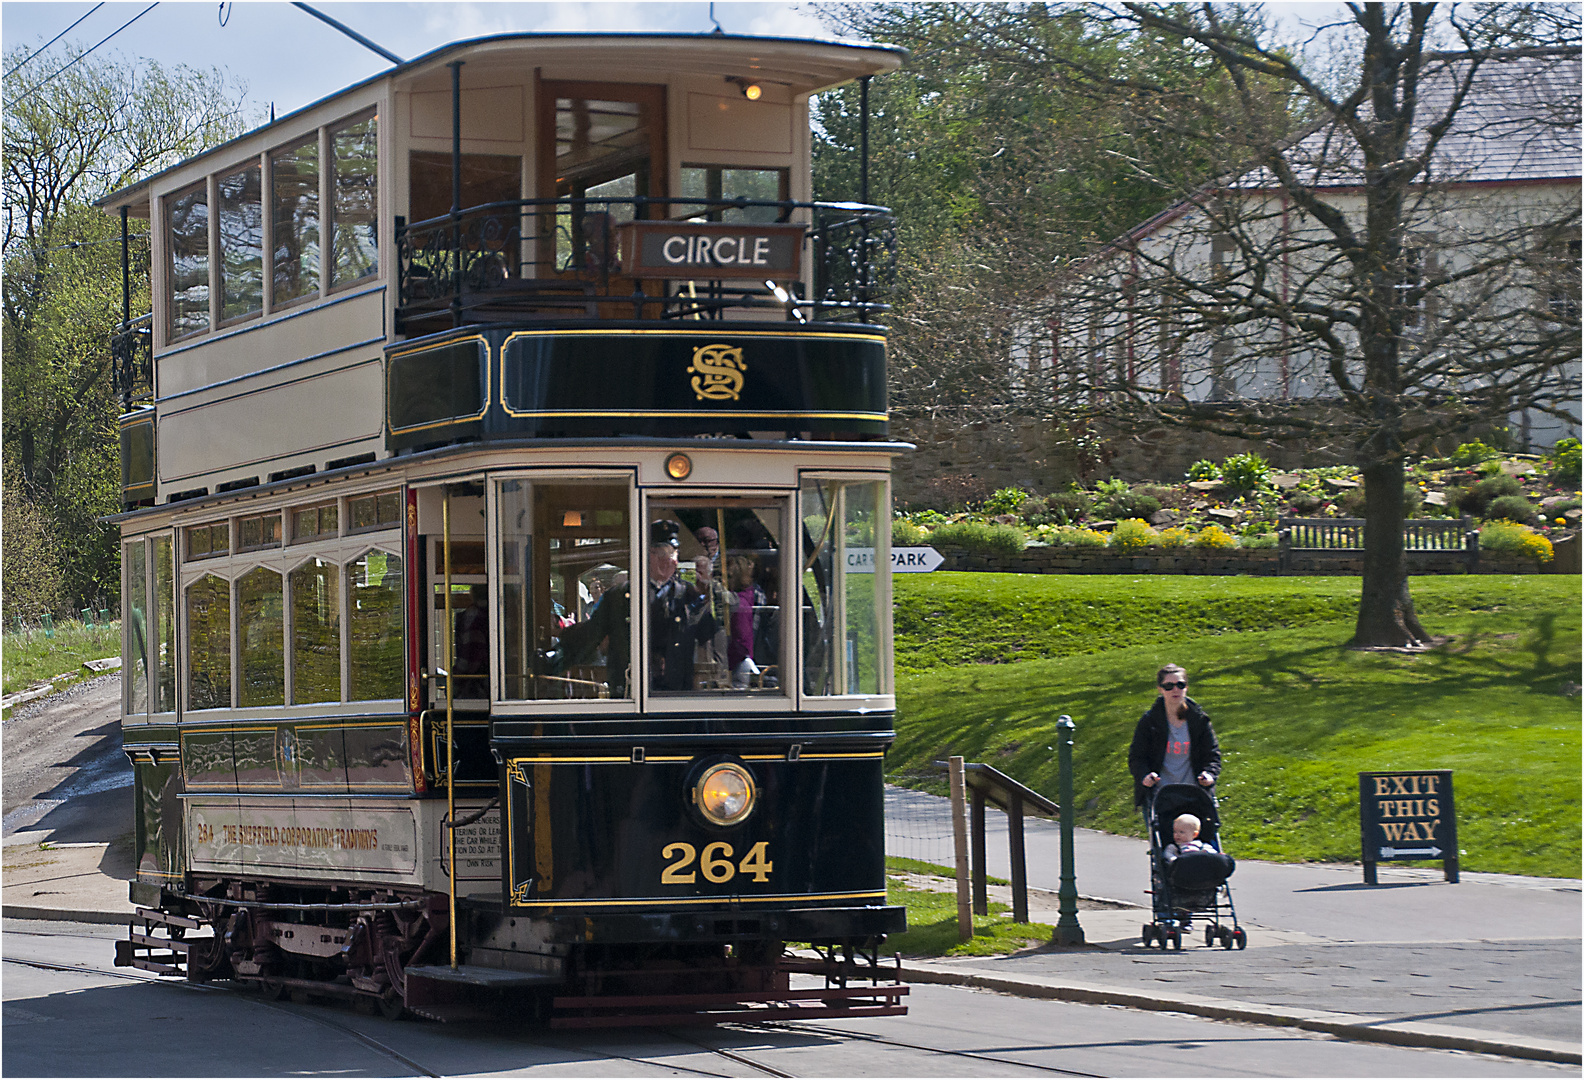 The tram and the baby